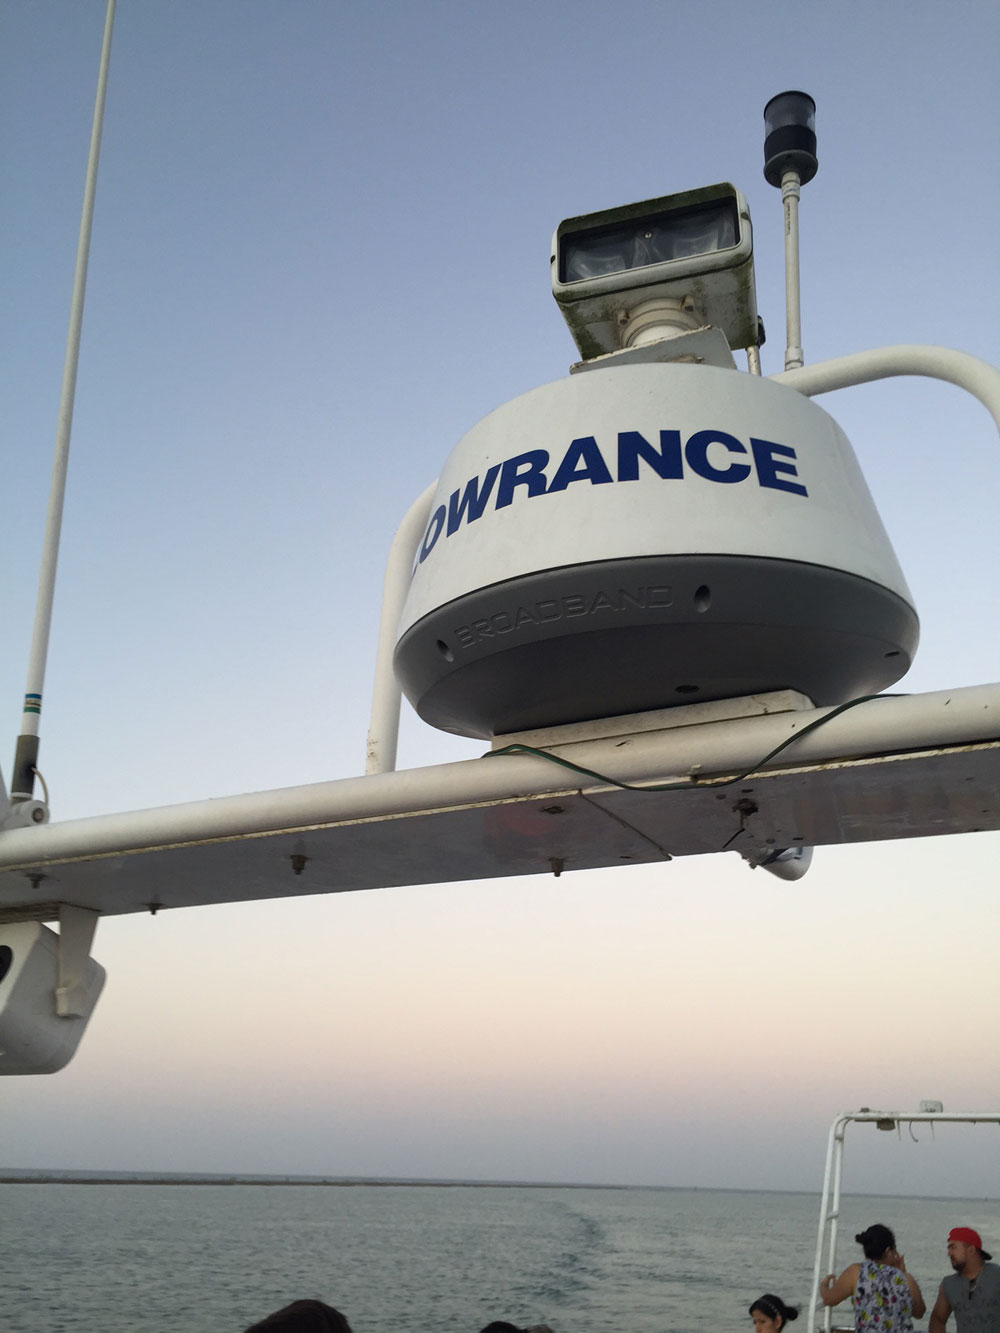 Lowrance Marine Equipment